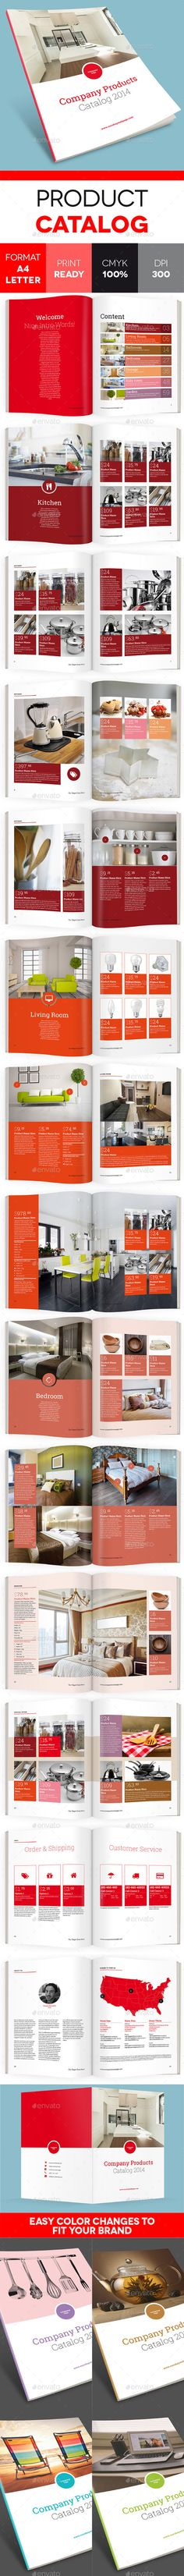 *J* - Flat Product Catalog Brochure - Catalogs Brochures                                                                                                                                                                                 More